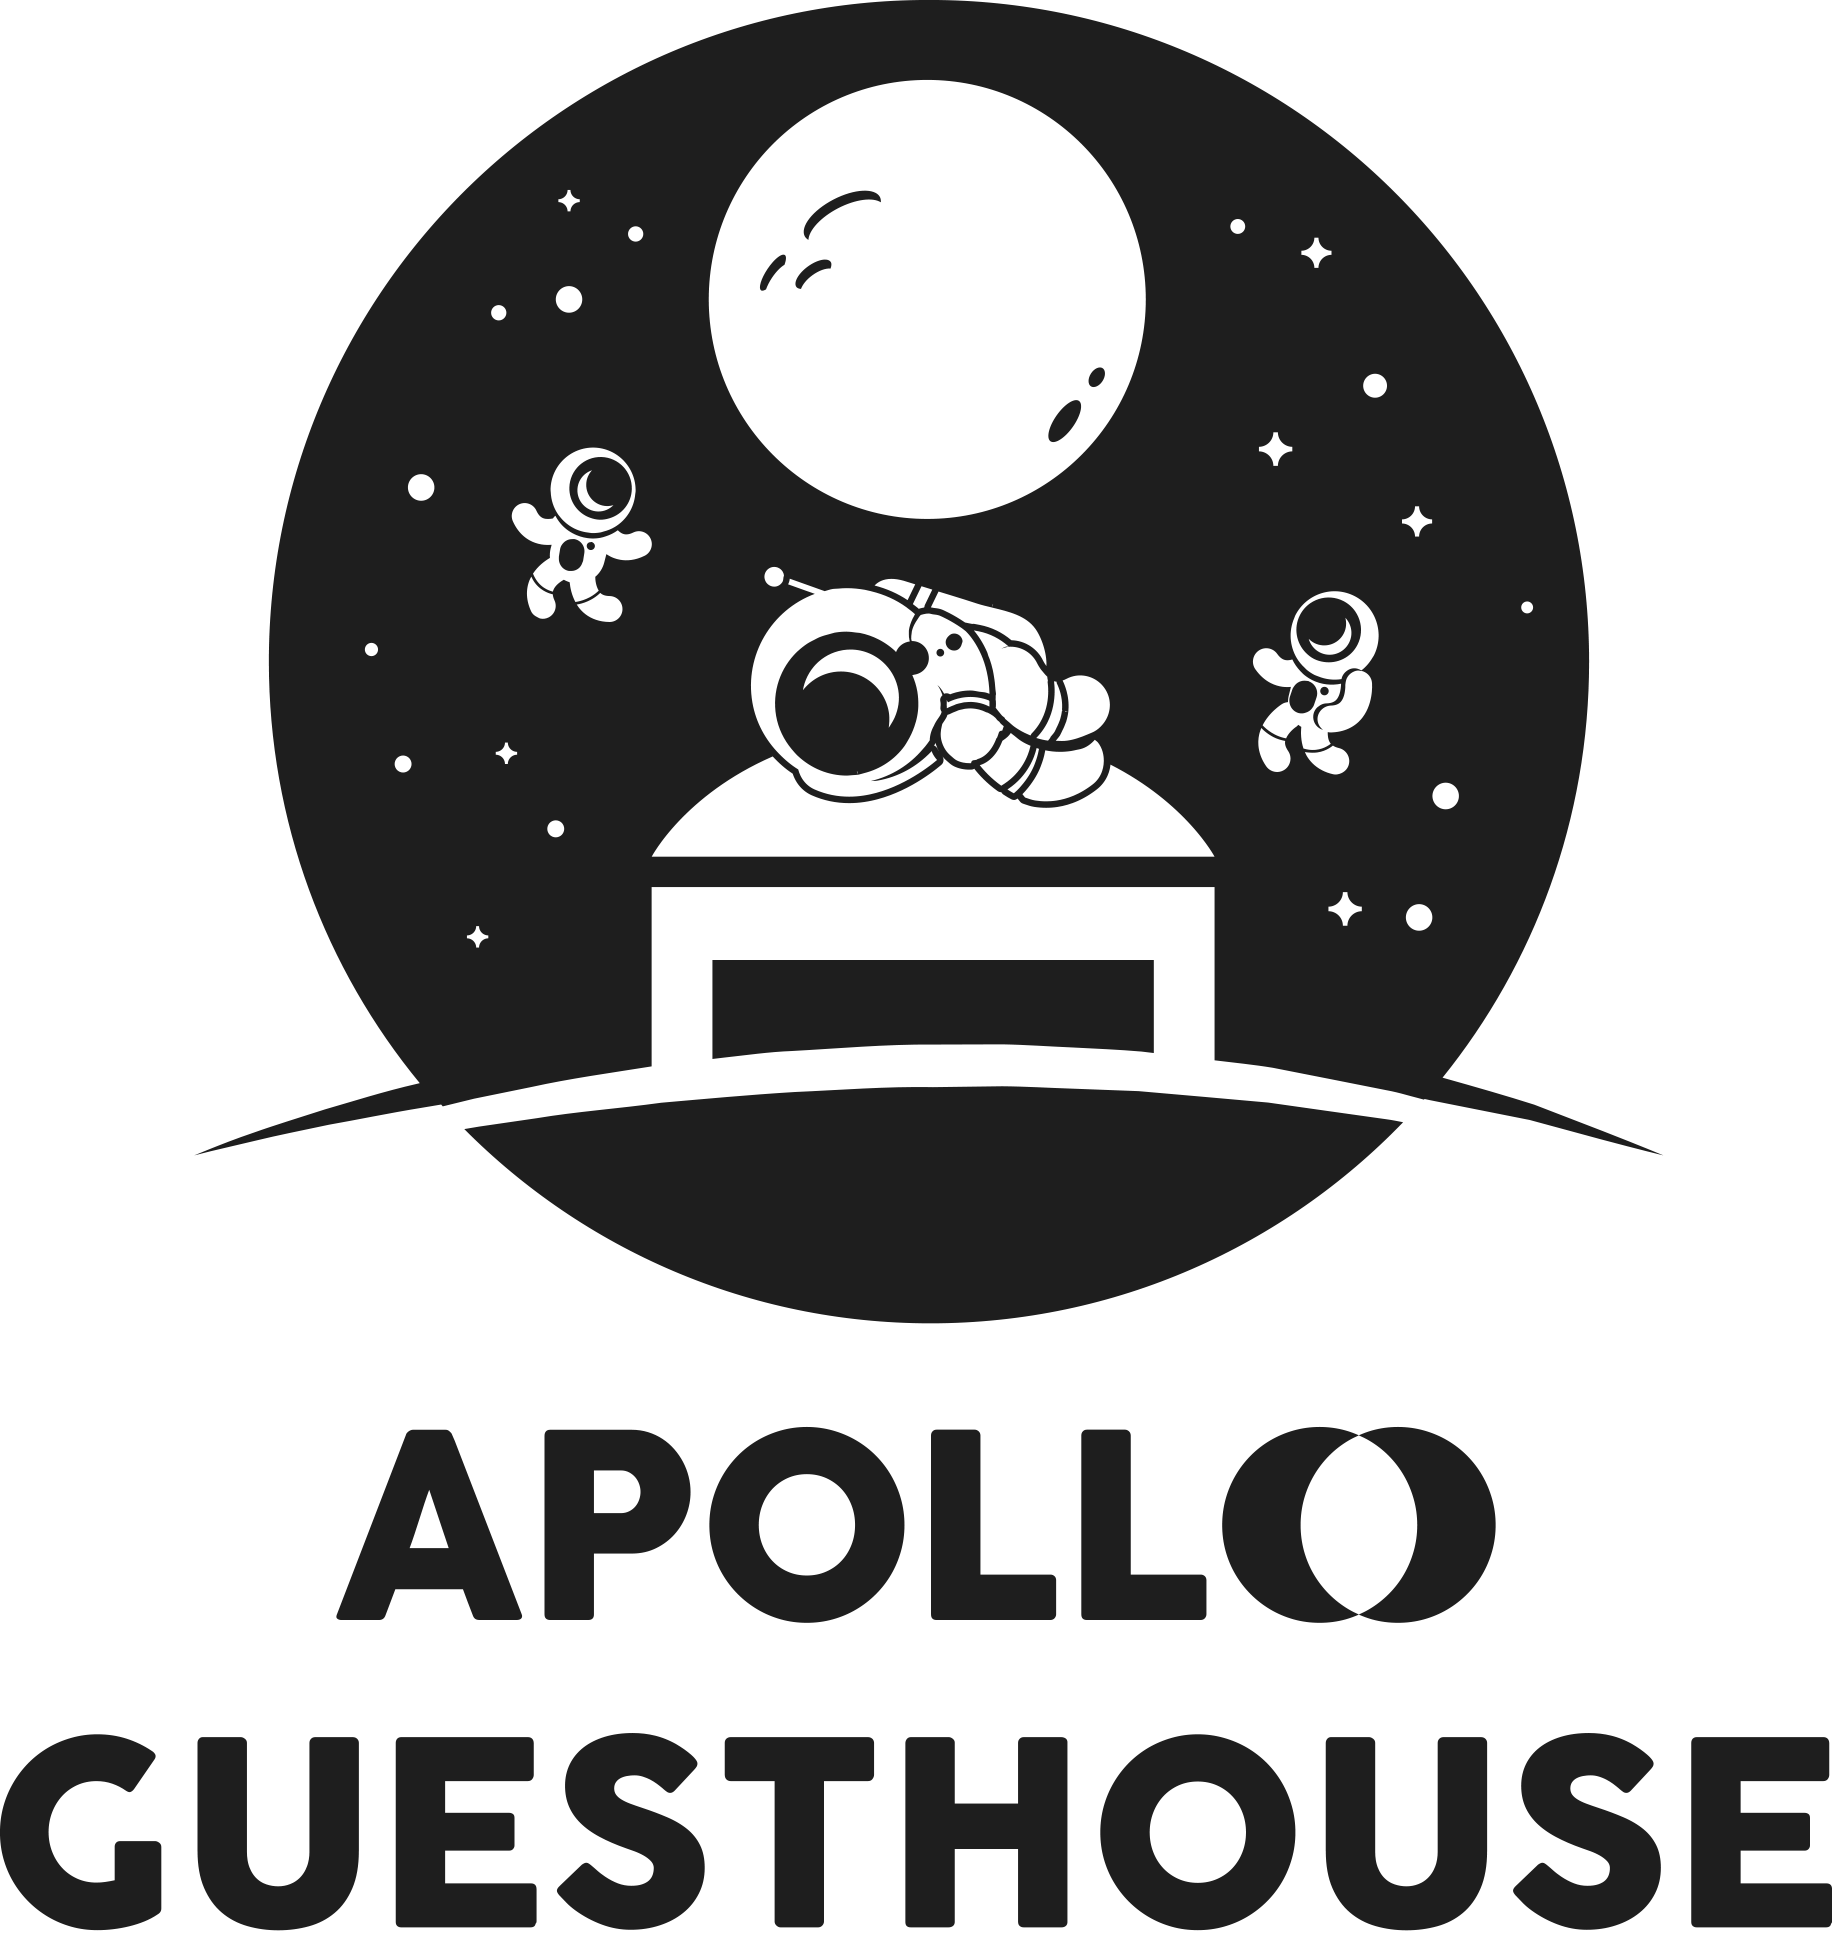 Apollo Guesthouse Seoul